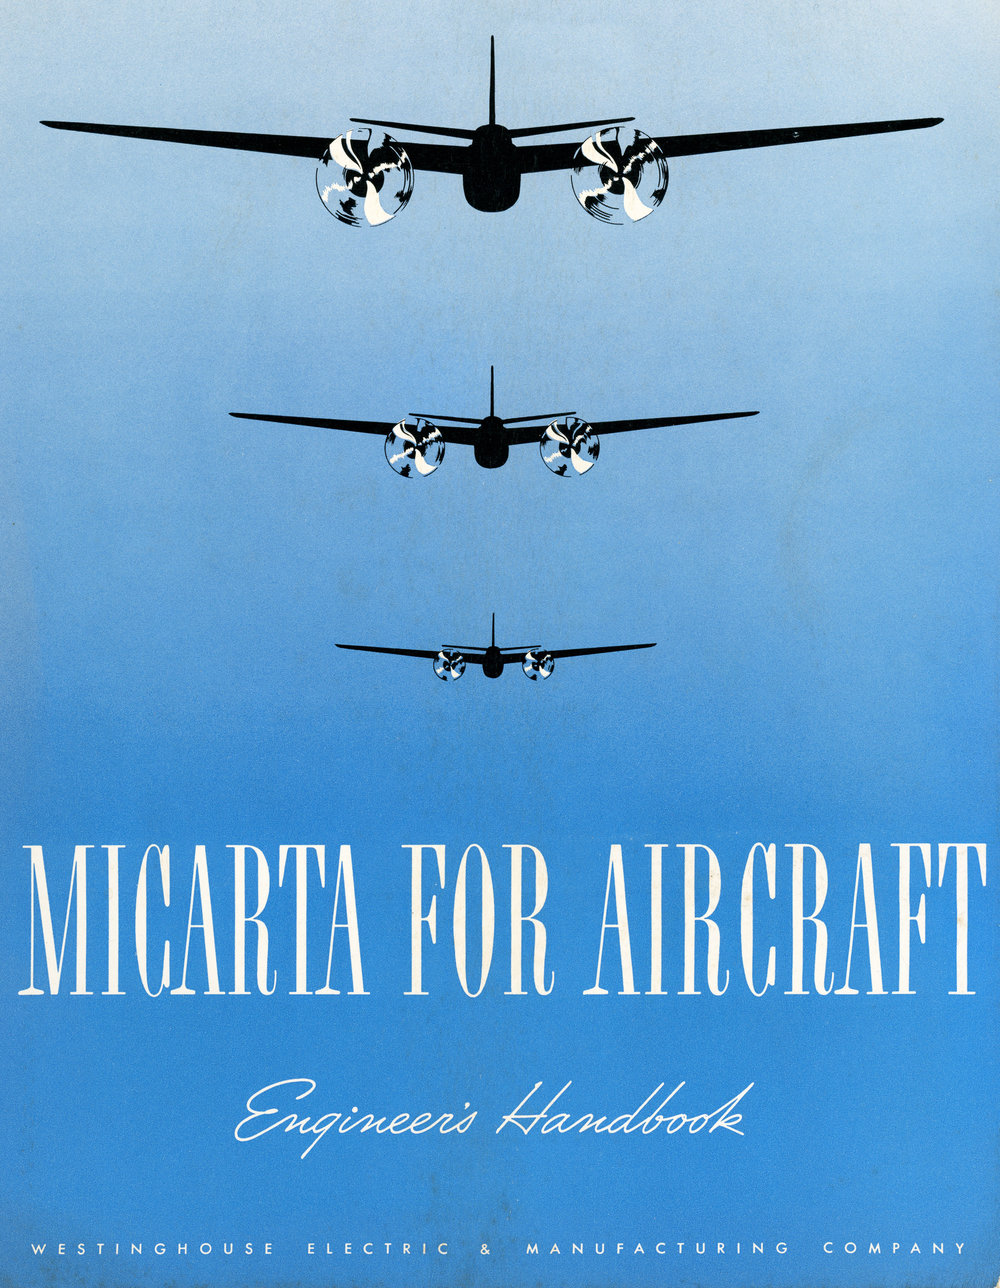 Micarta For Aircraft